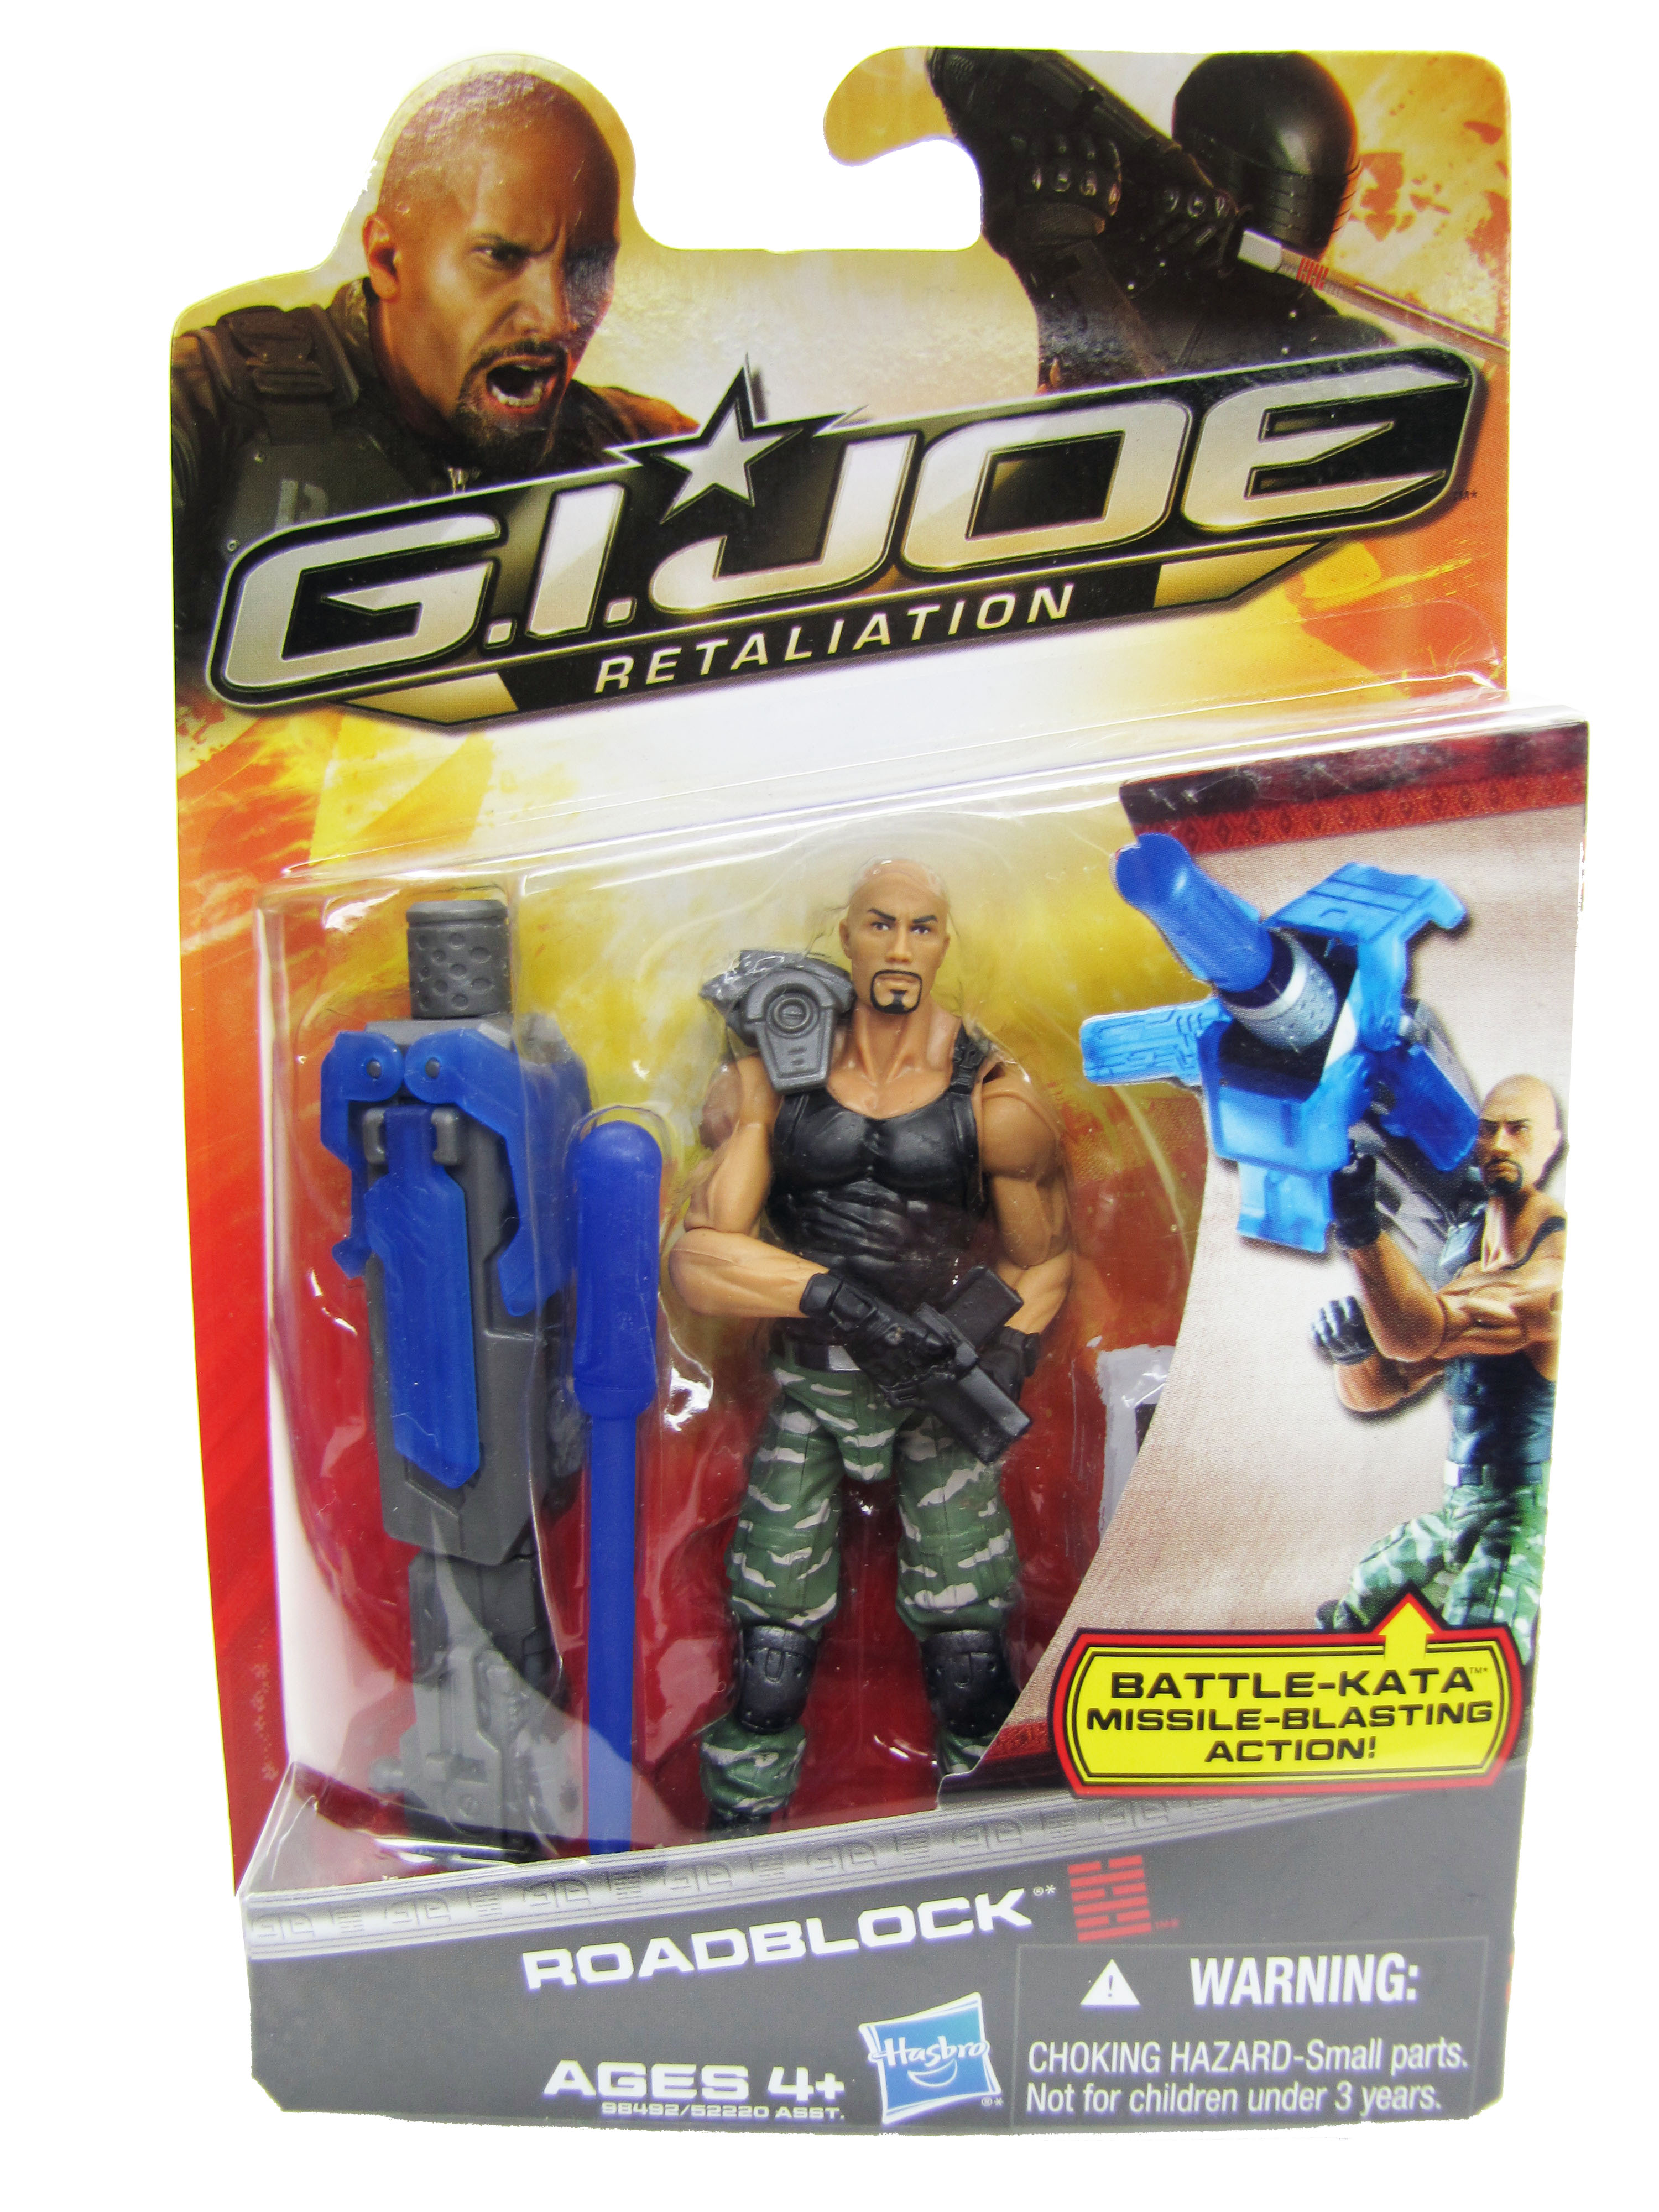 2013 GIJoe Retailation Roadblock Mint on Card